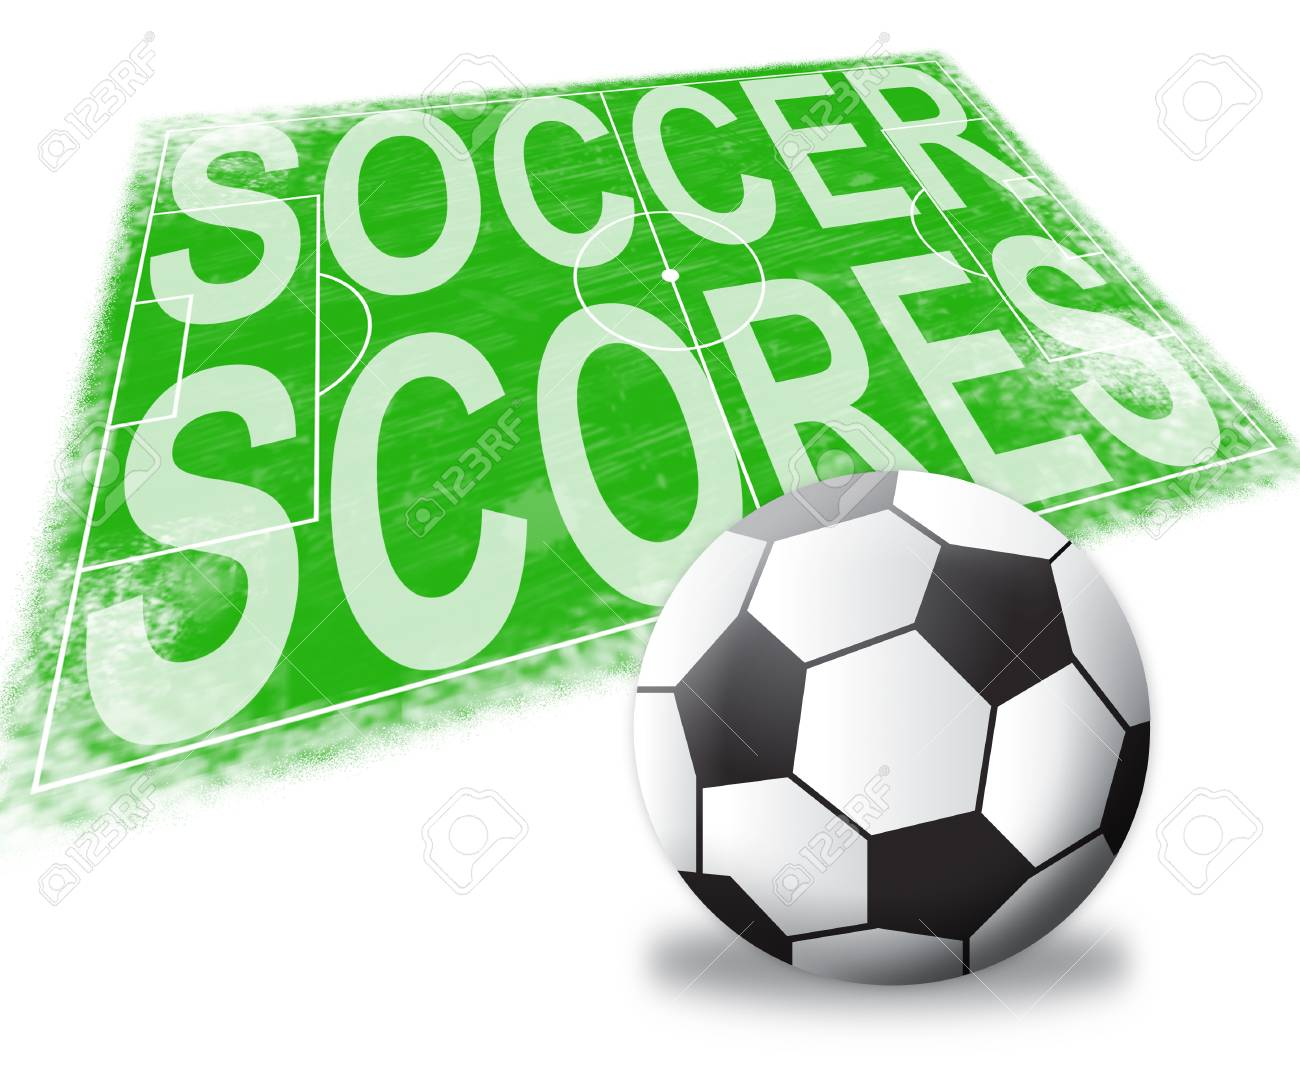 Soccer Scores Pitch Shows Football Results 3d Illustration Stock